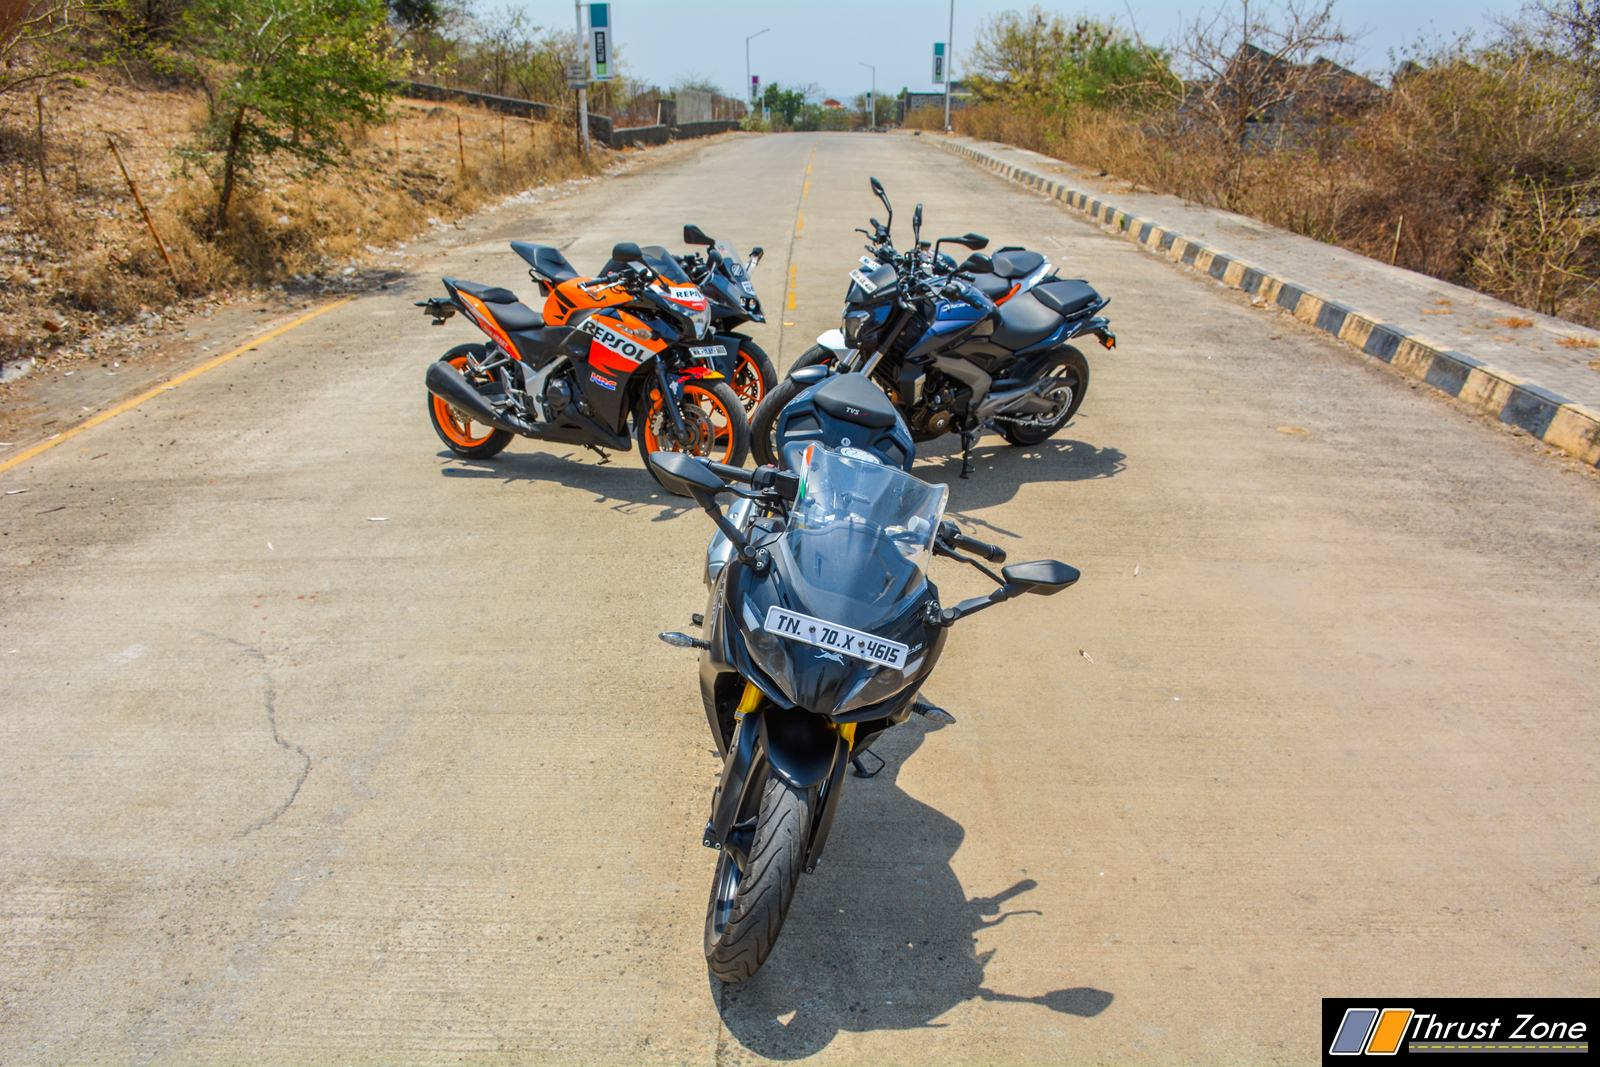 ApacheRR310-vs-Dominar-400-vs-CBR250R-KTM-RC-200-Duke250-Comparison-Review-12